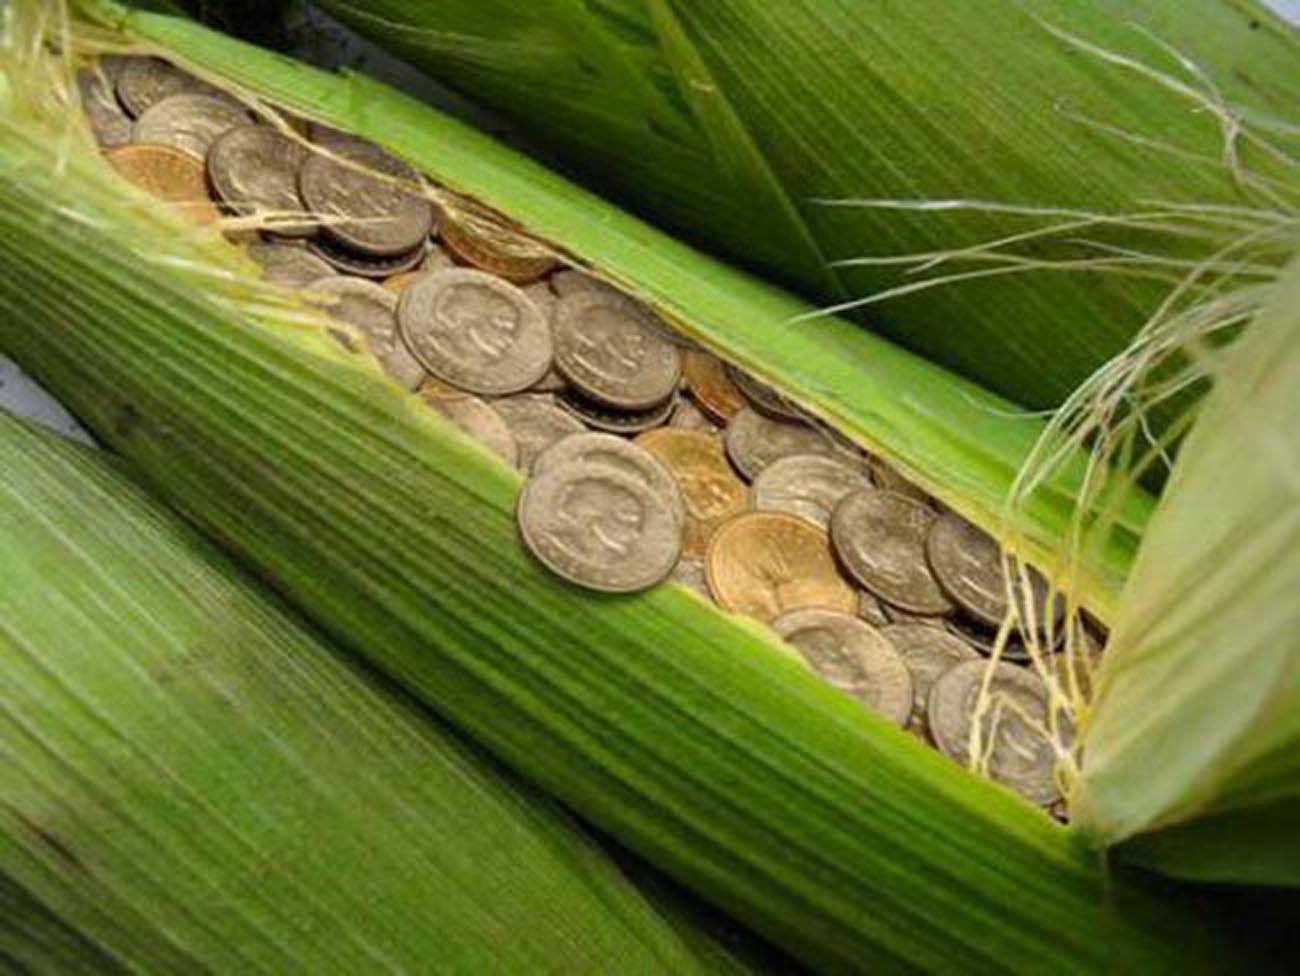 Step by step guide to investing in agriculture